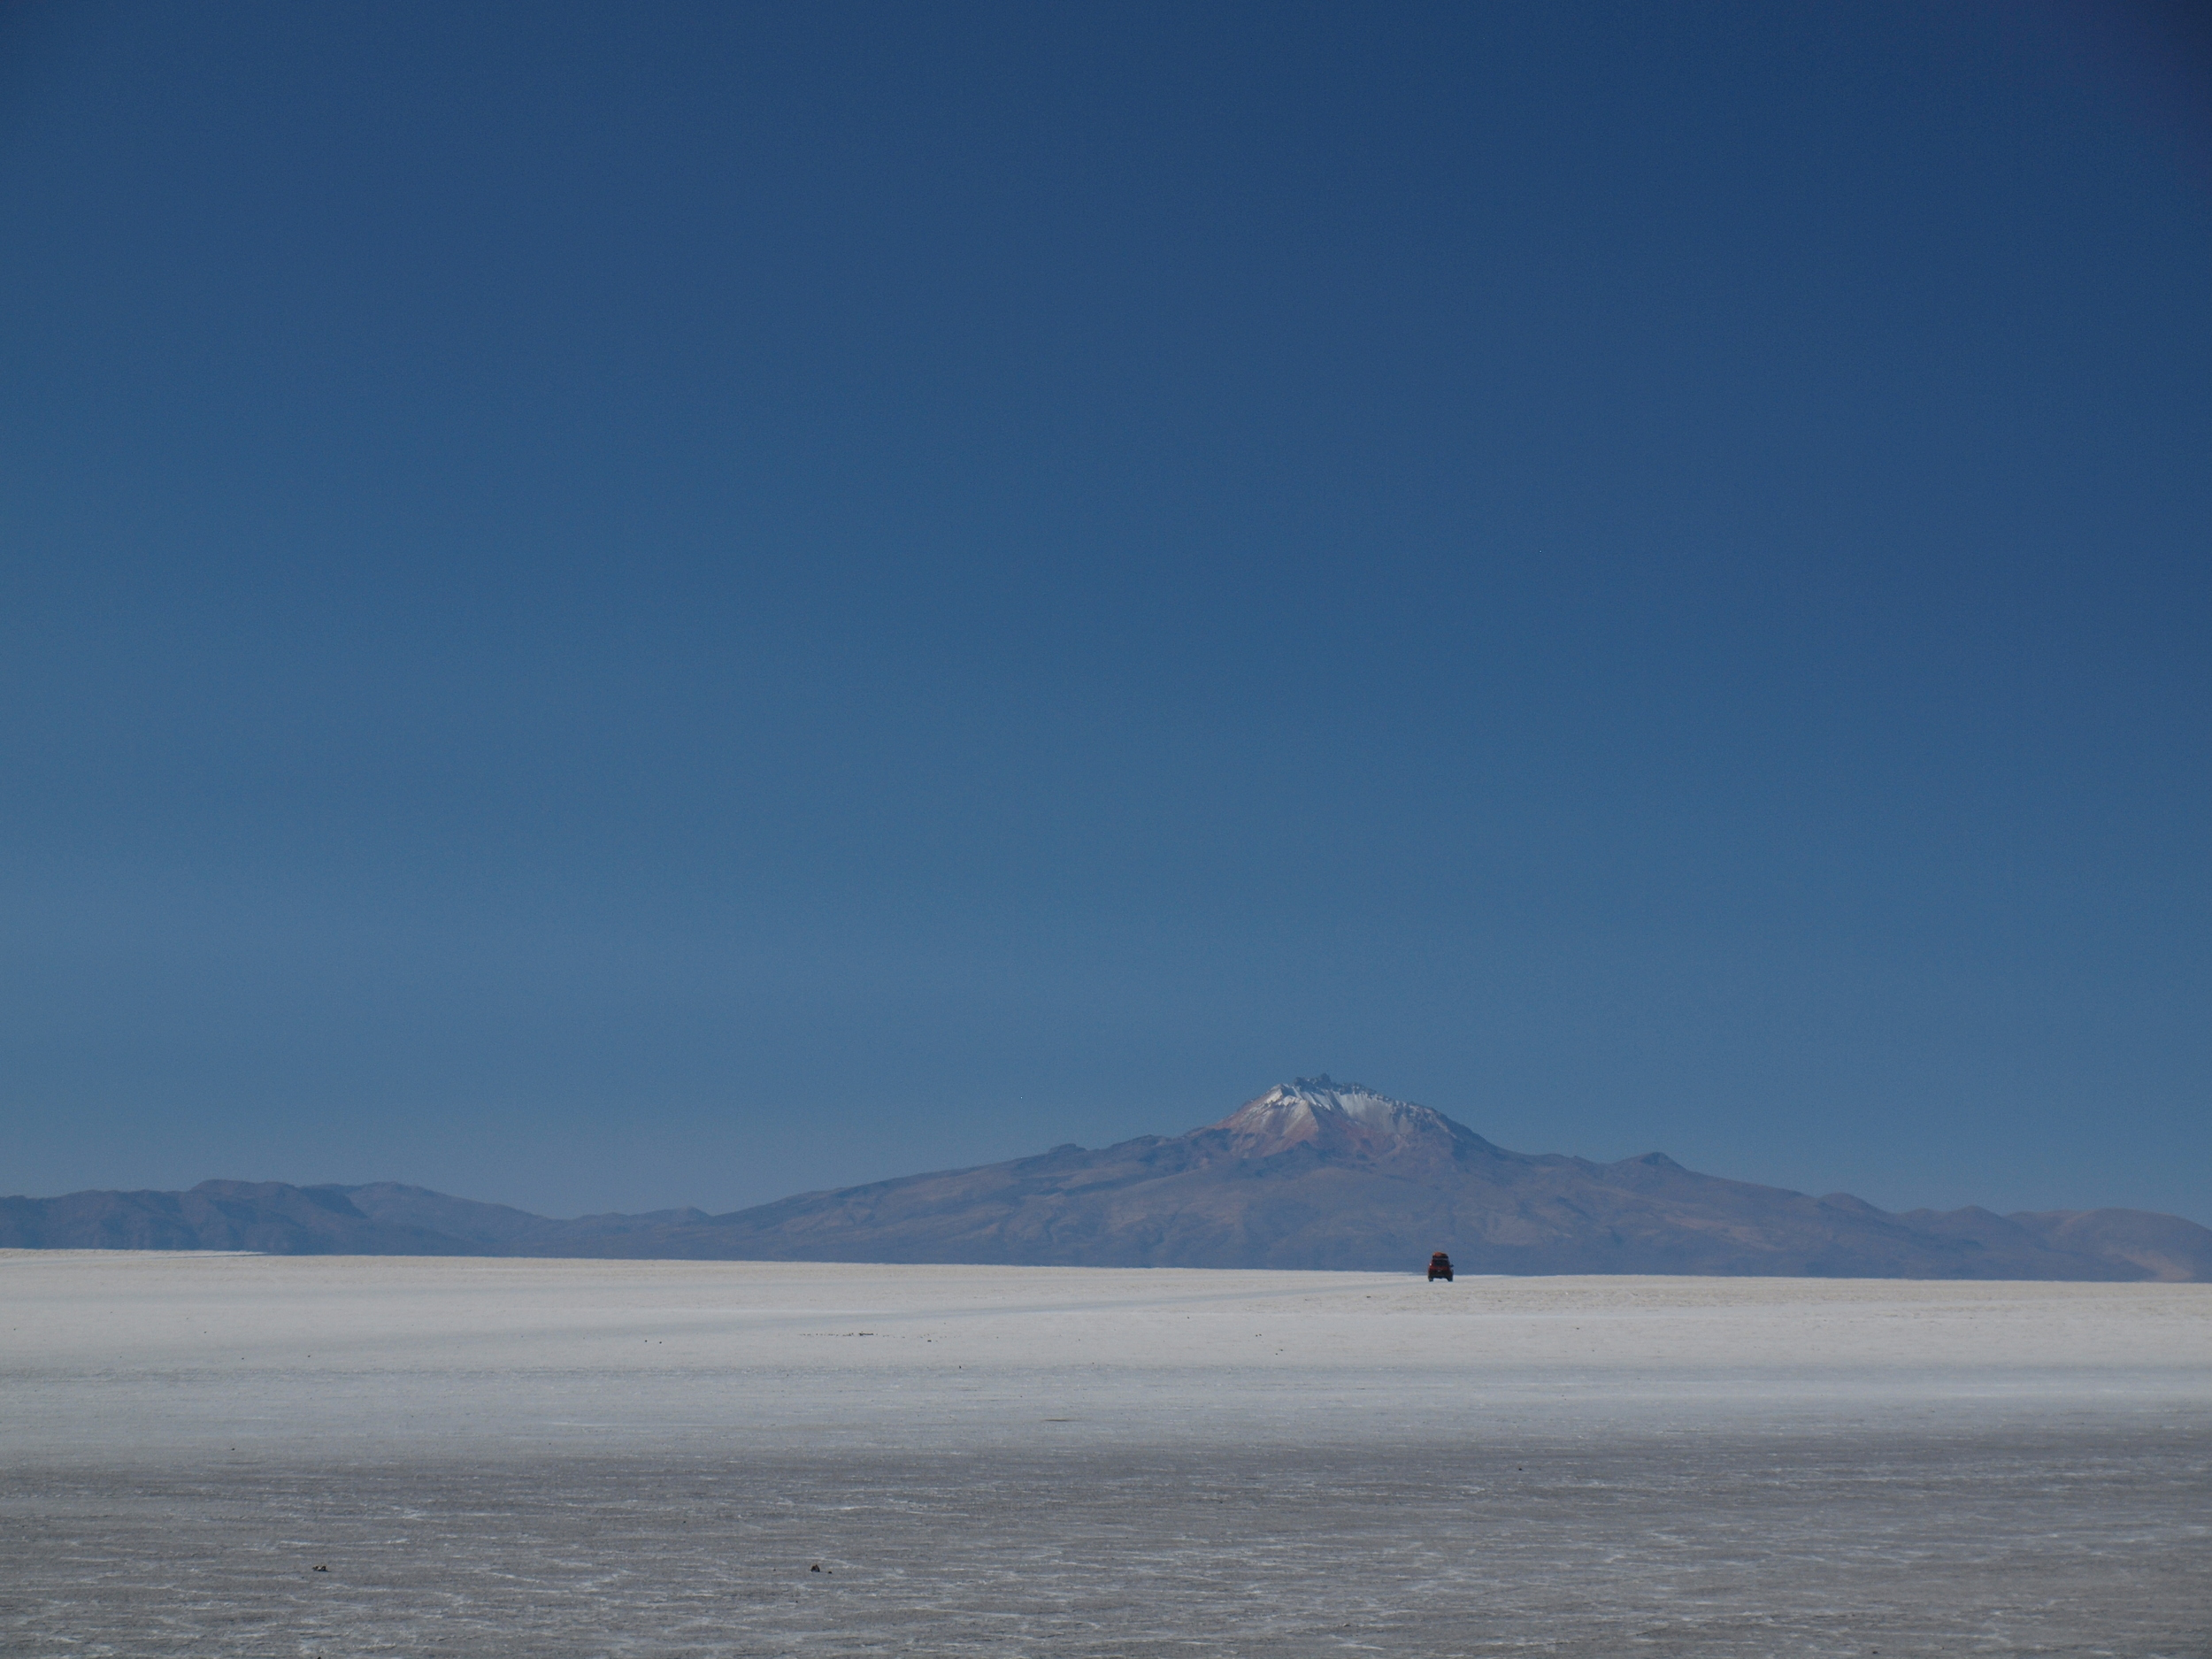 Episode 7: The Salar de Uyuni